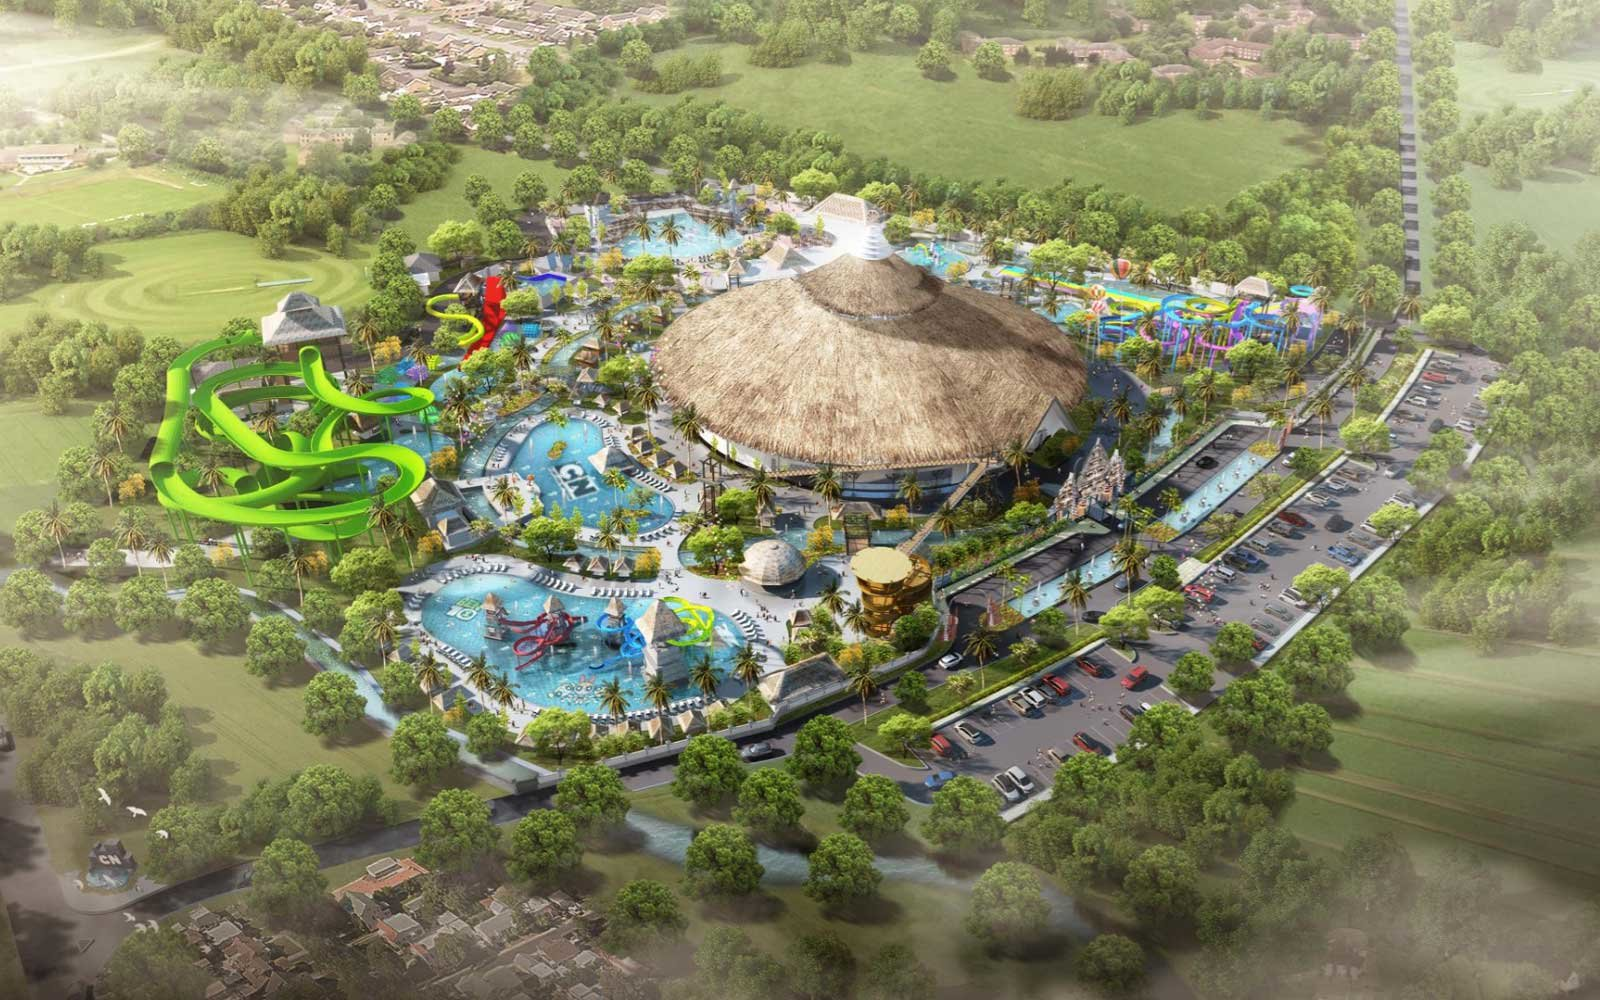 Artist concept of the Cartoon Network amusement park, coming to Bali in 2020